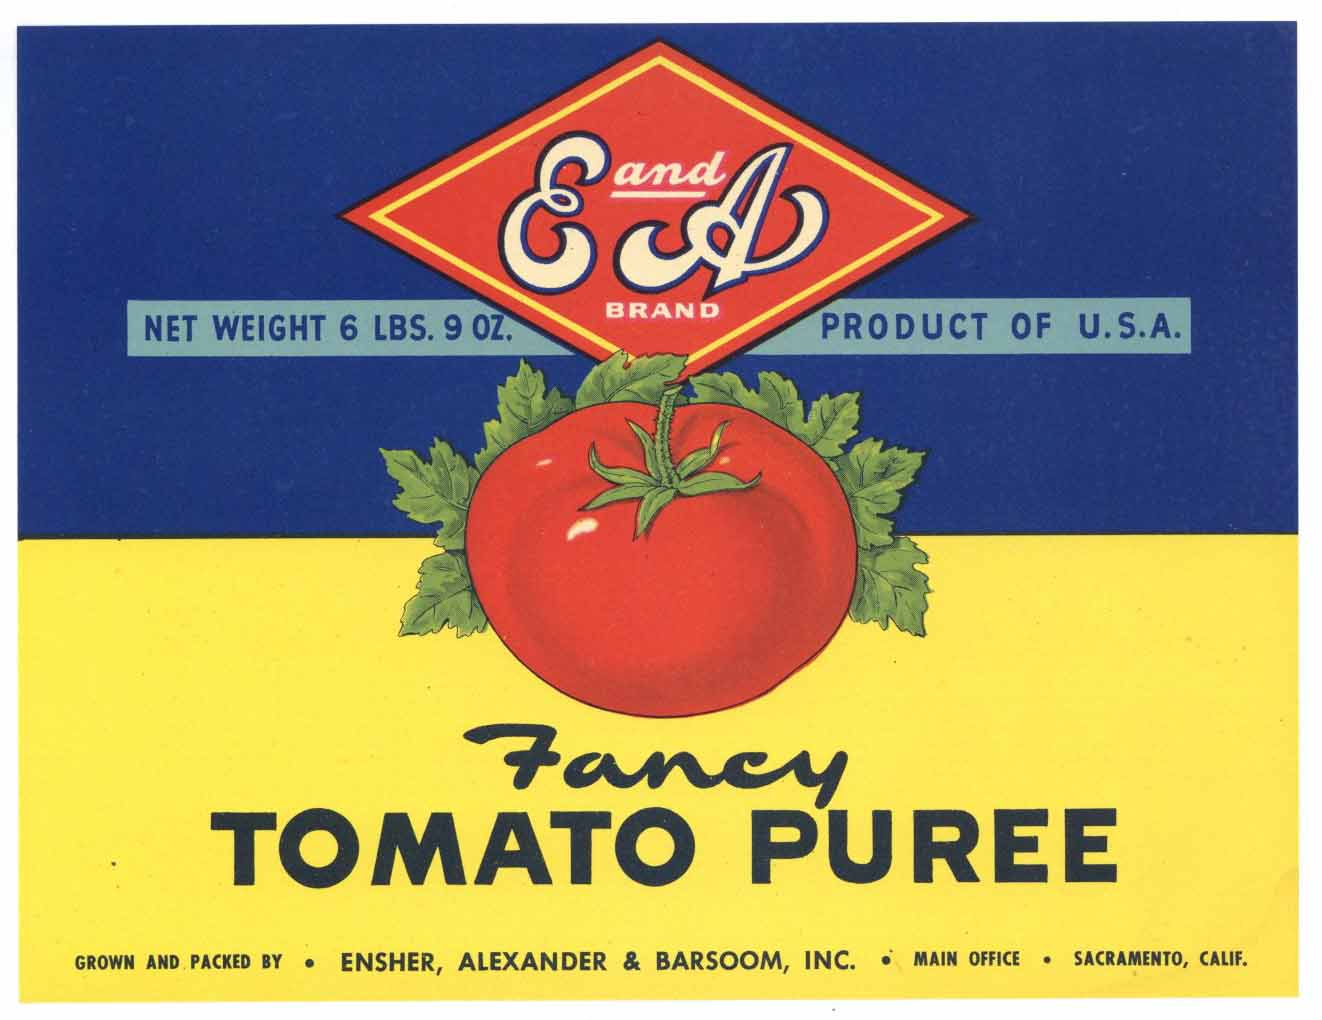 E and A Brand Vintage Tomato Puree Can Label